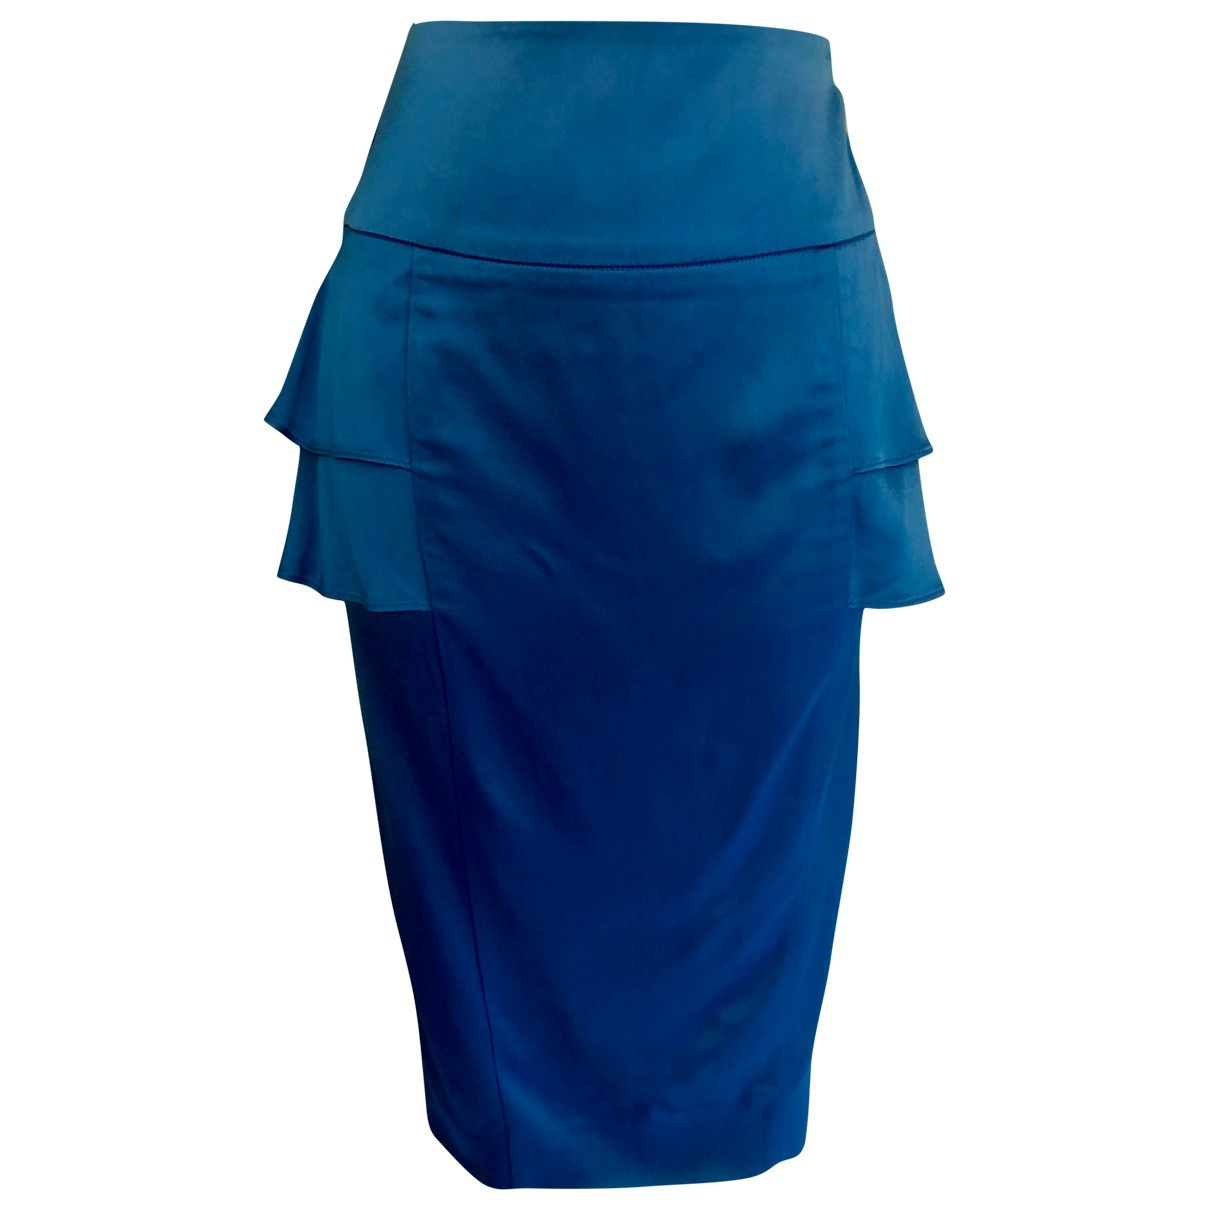 Reiss - Jupe   pour femme - turquoise